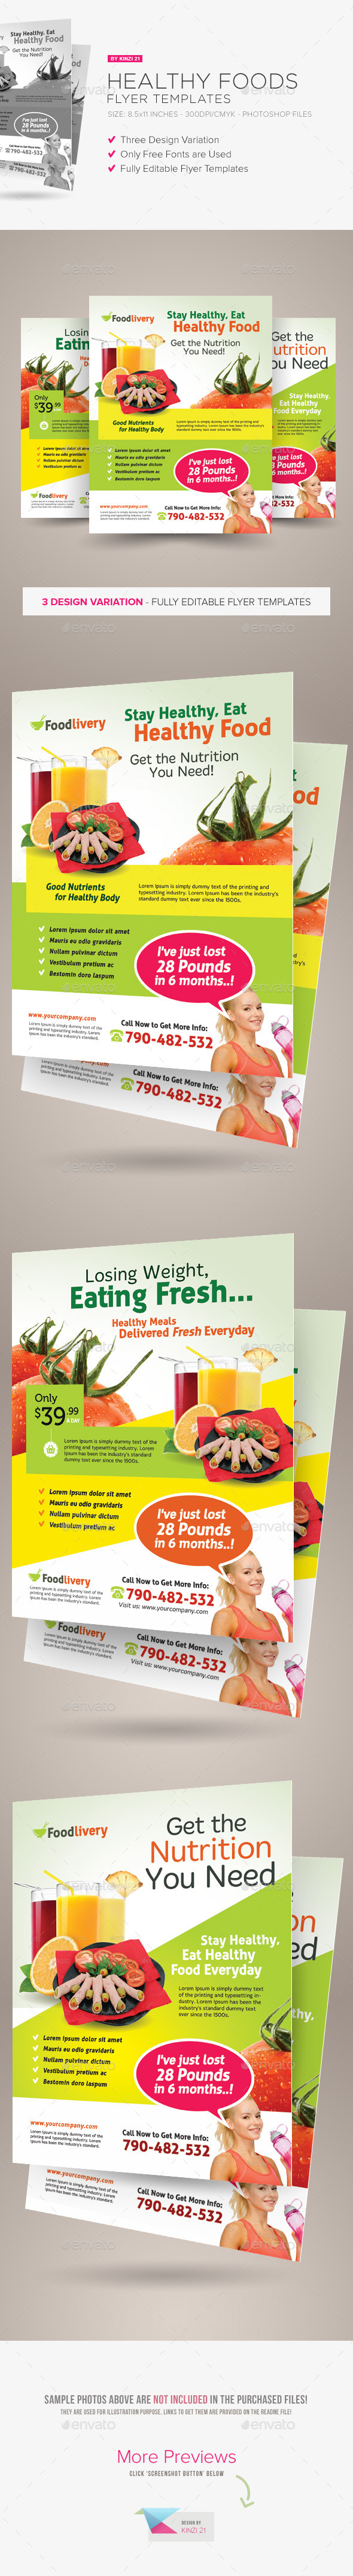 Healthy Food Flyer Templates - Corporate Flyers